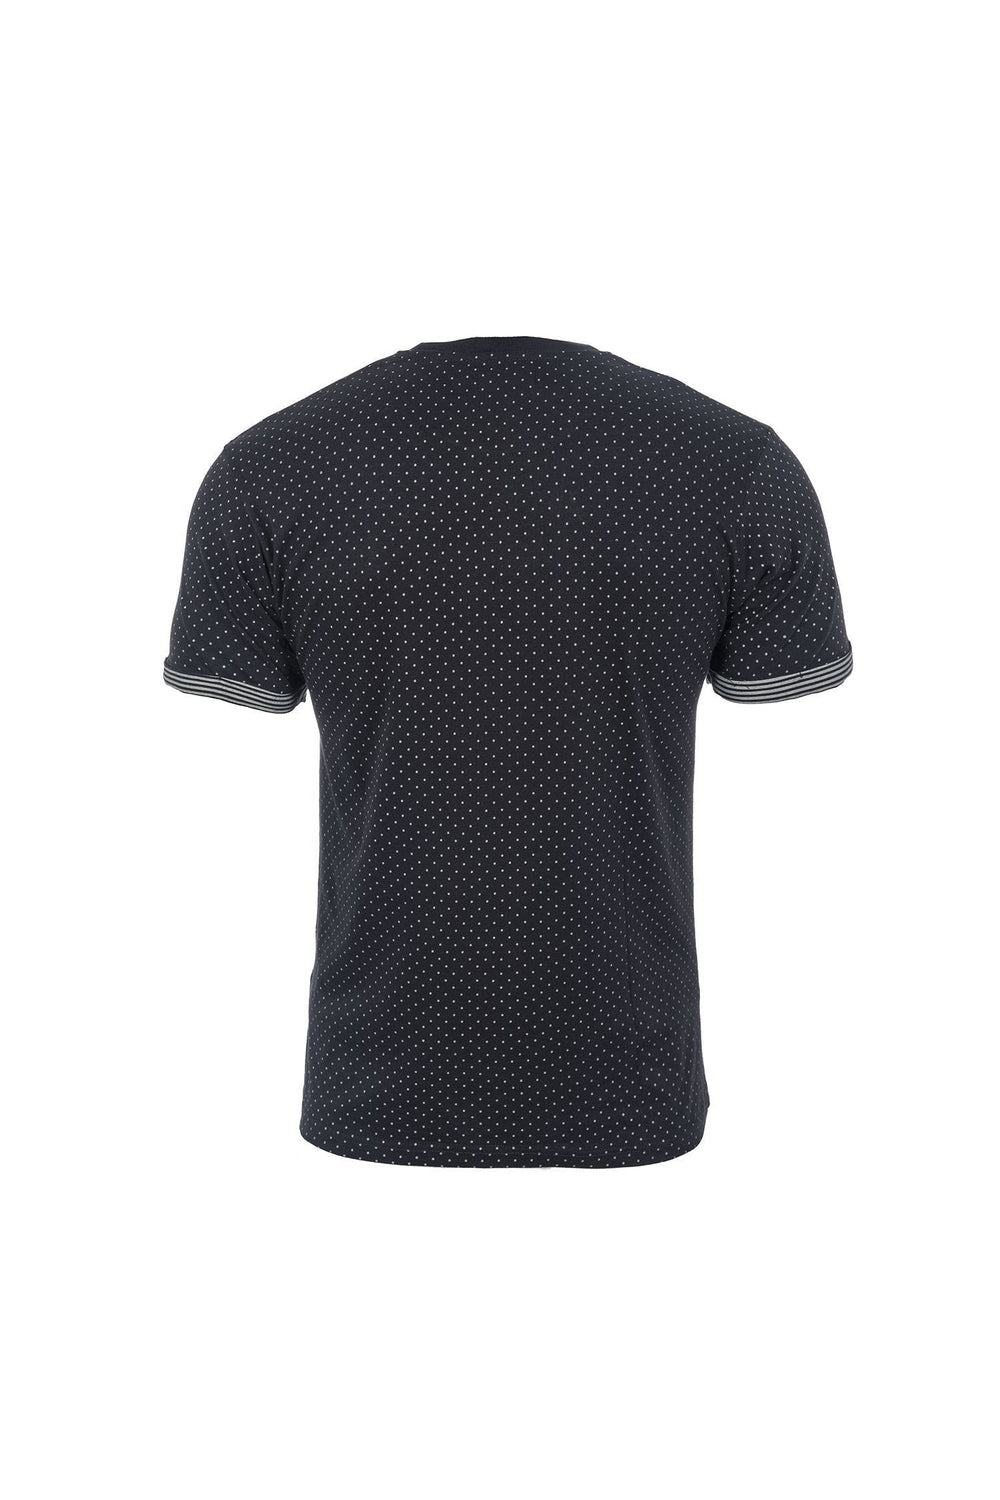 T-Shirts - Pocket Spot T-Shirt Navy